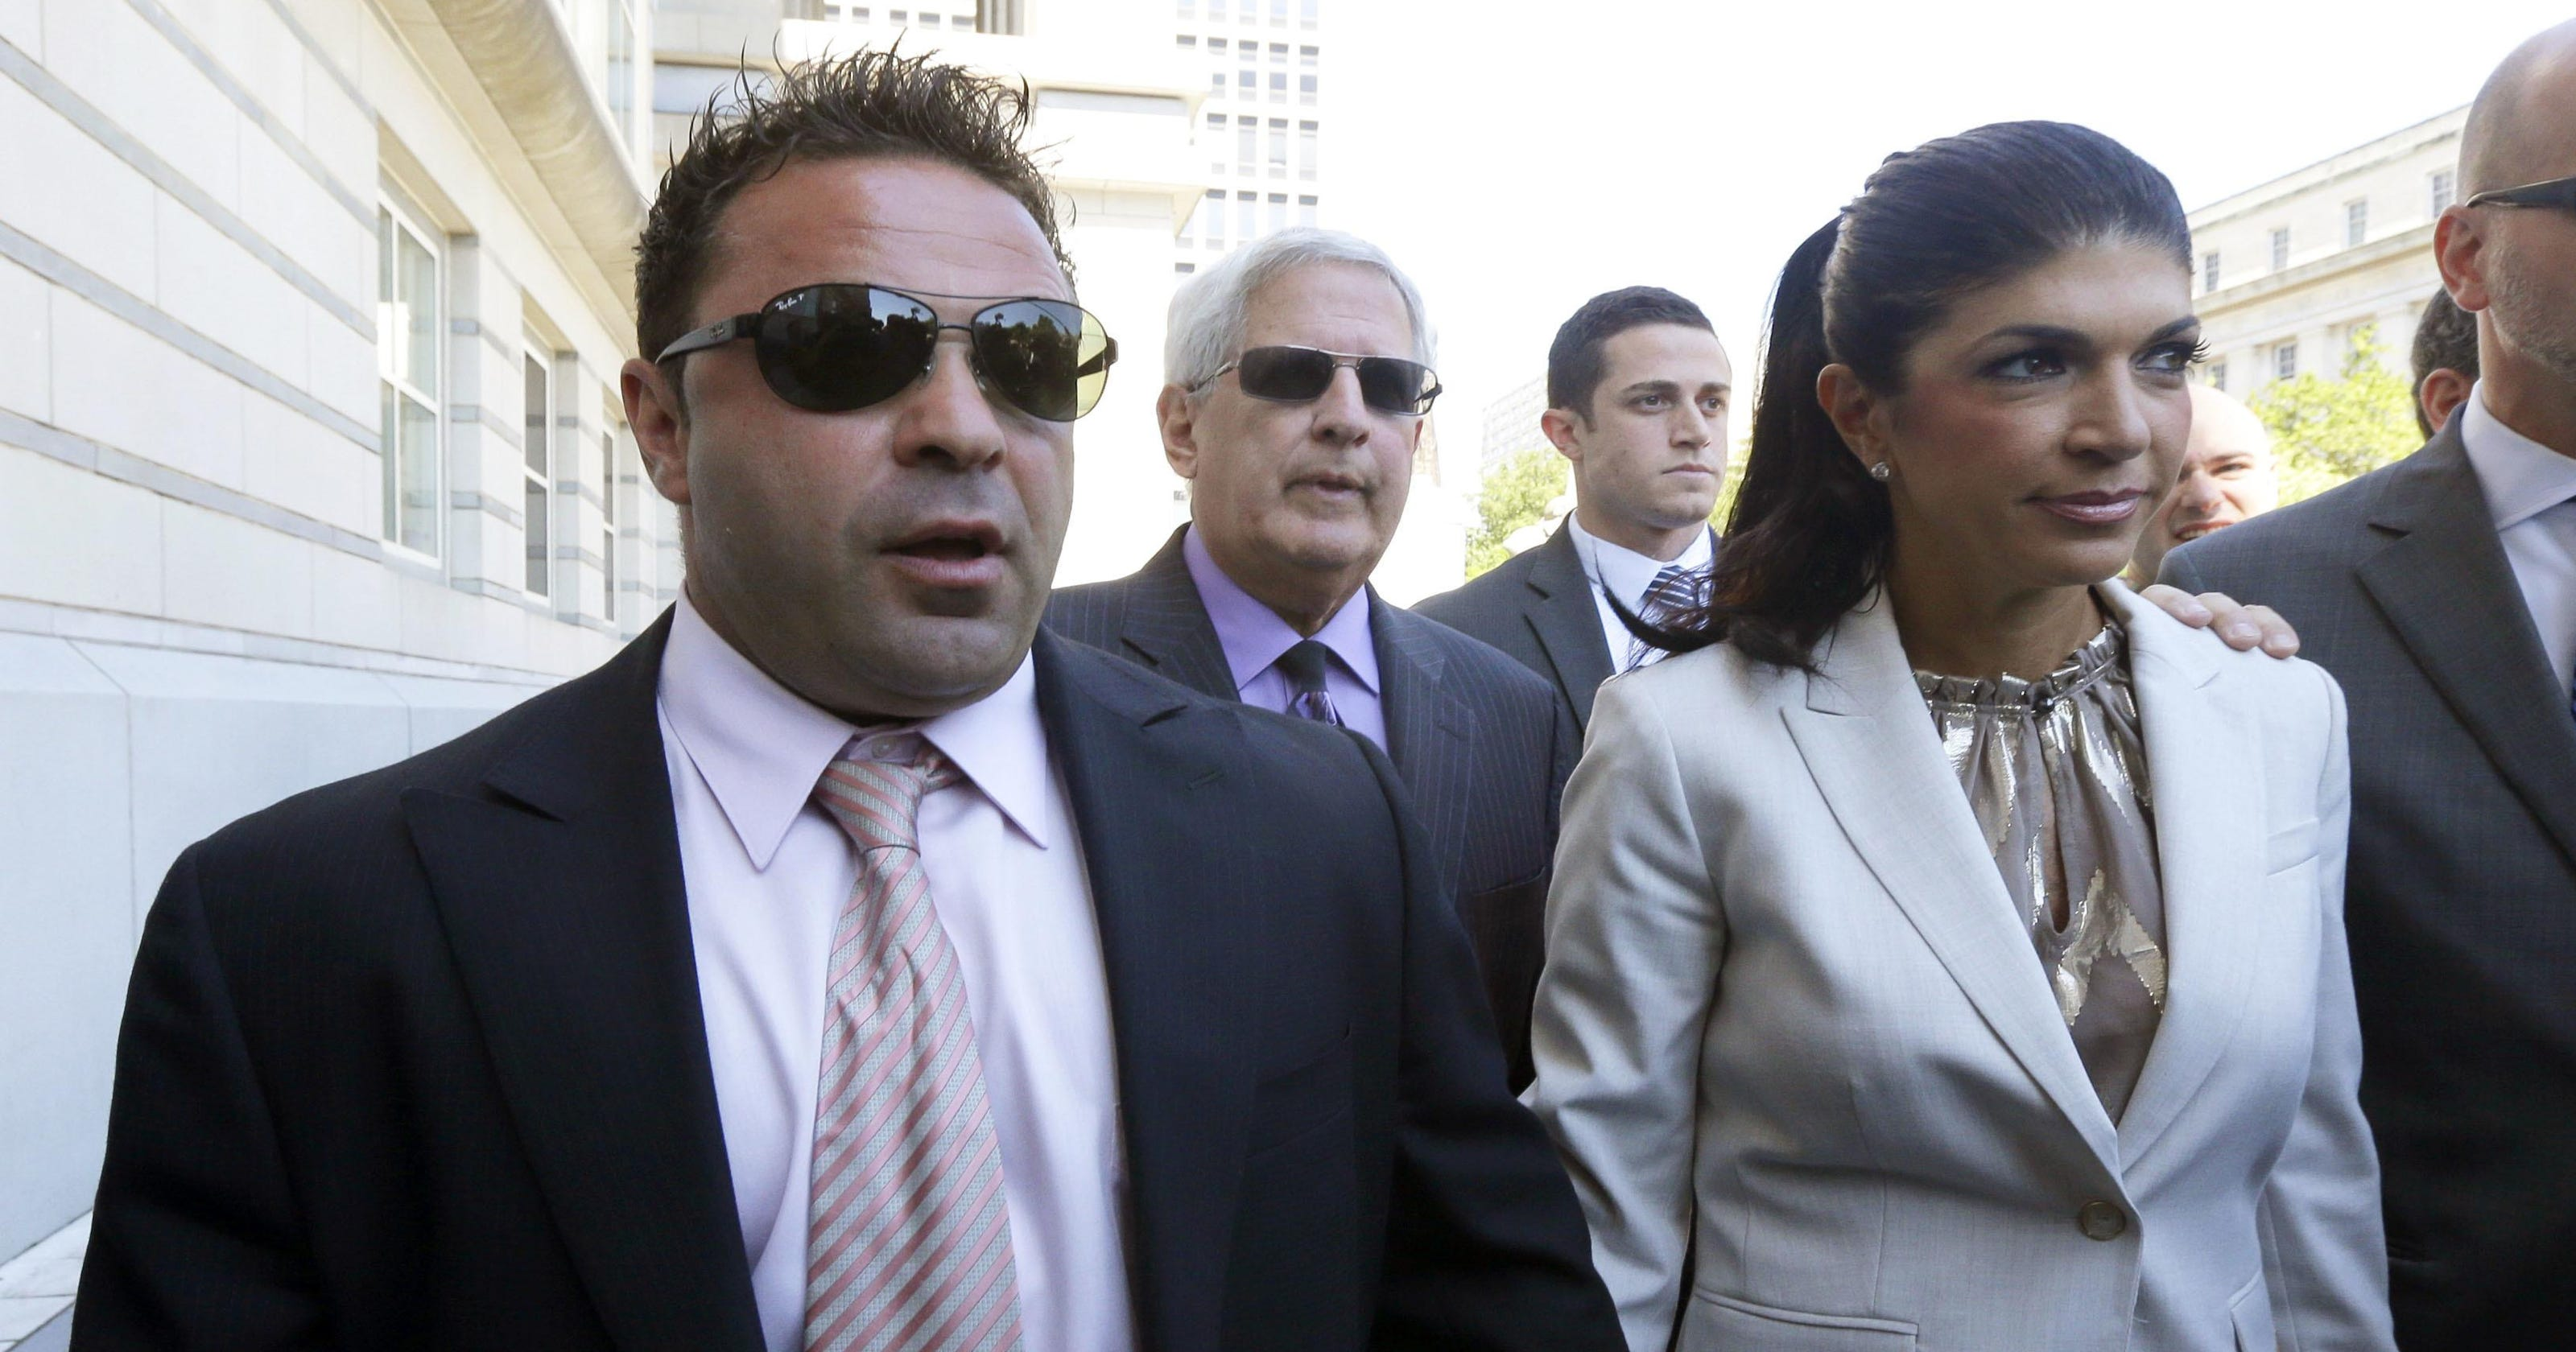 Real Housewives' husband in York immigration court to be deported